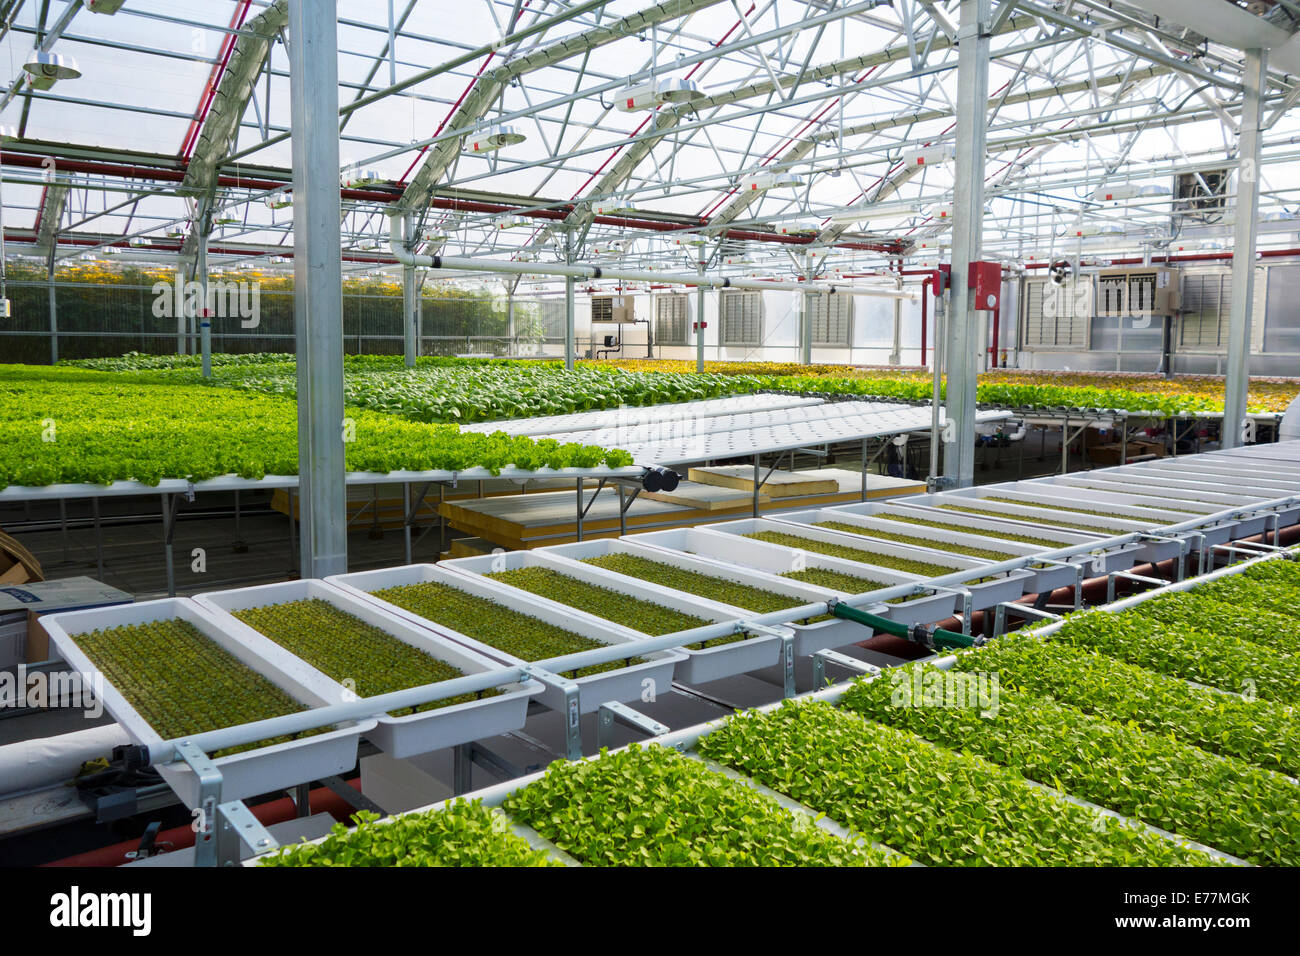 The greenhouse market